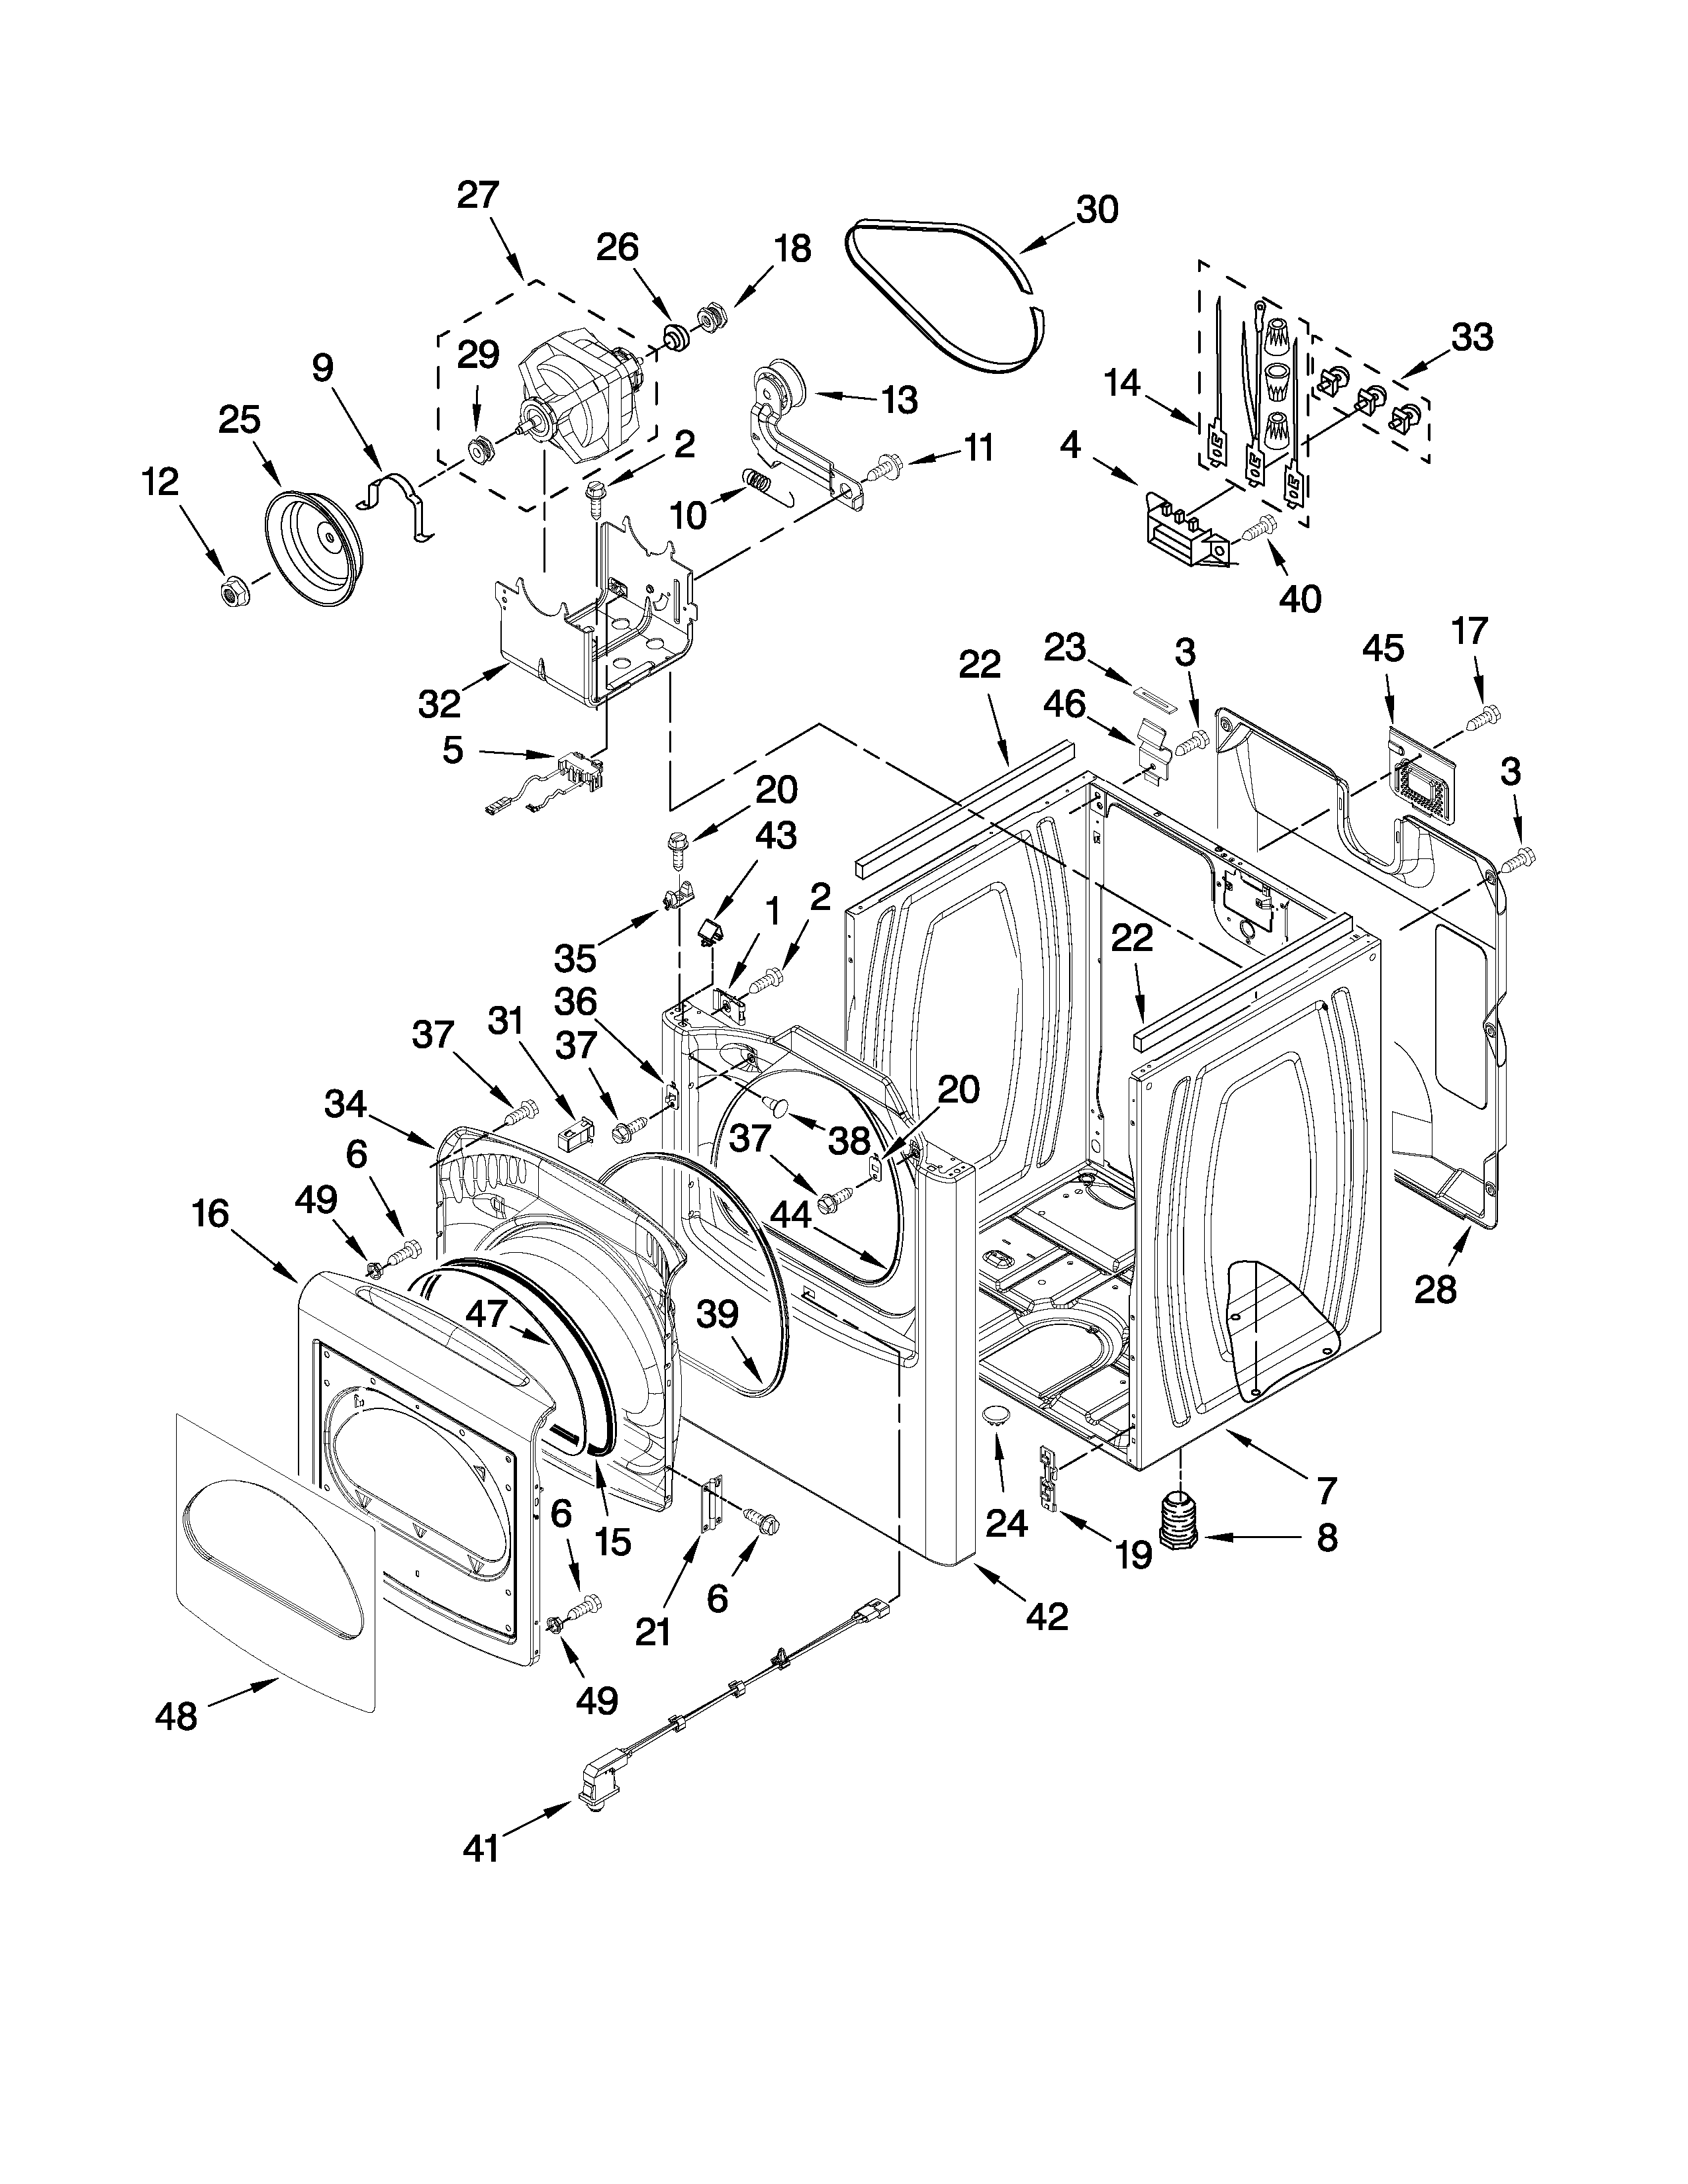 Engine Diagram And Parts List For Briggs Stratton Allproductsparts